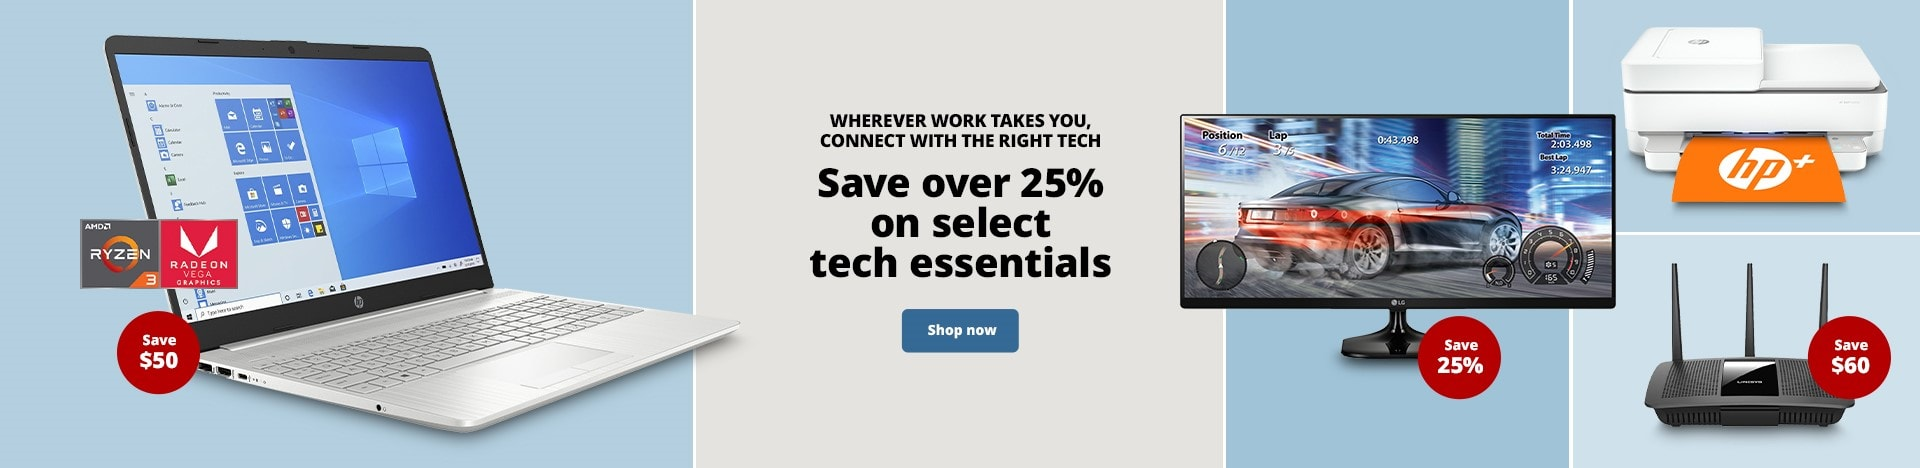 Wherever work takes you, connect with the right tech. Save over 25% on select tech essentials